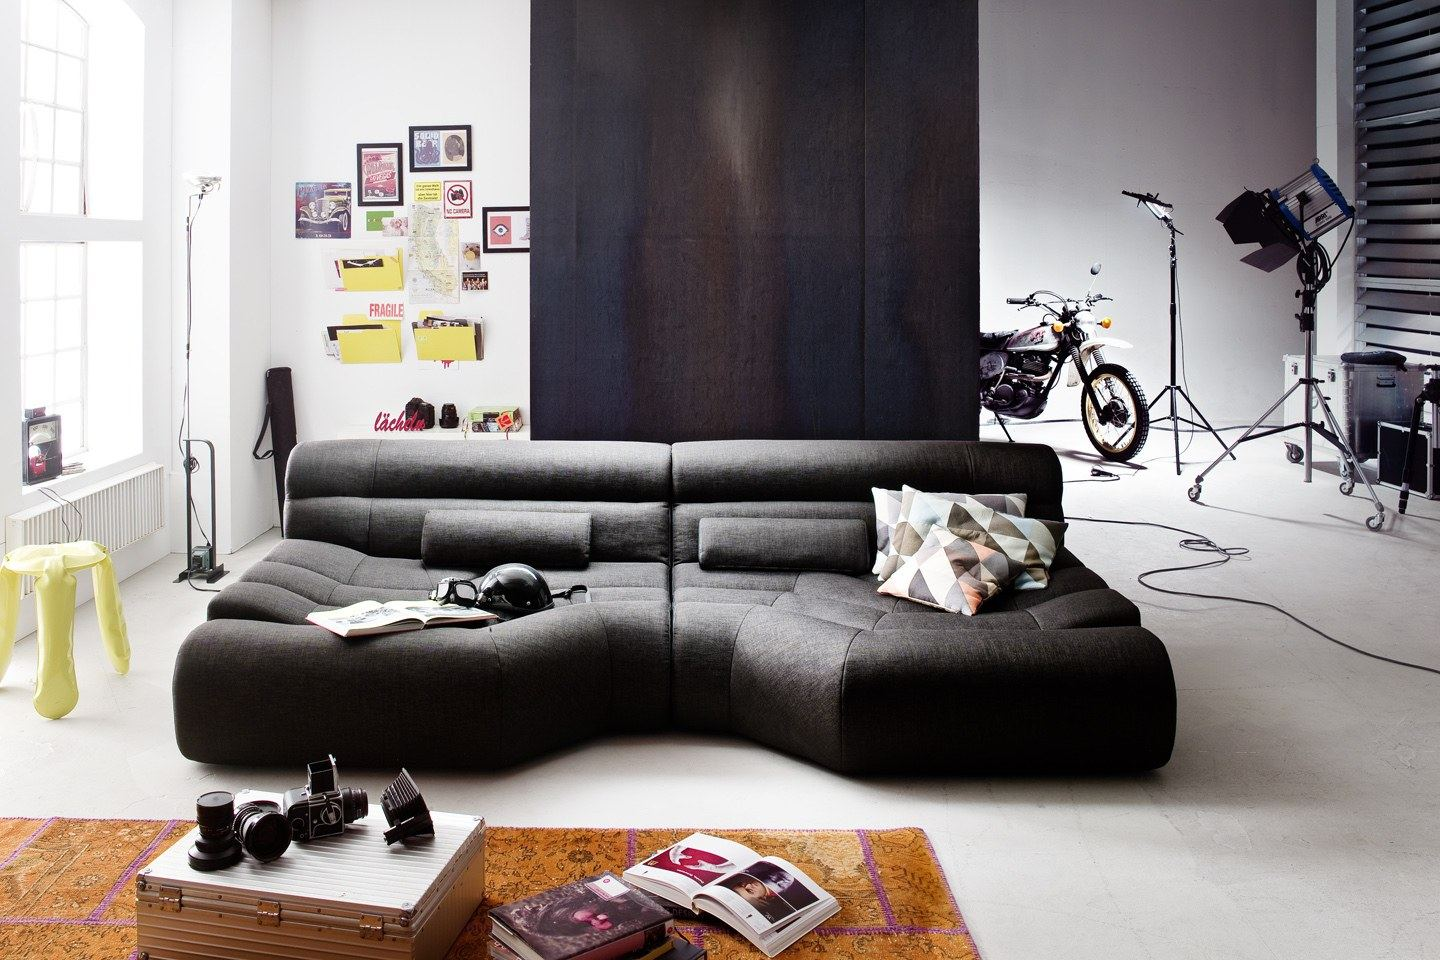 megasofa big sofa trapez megasofa designer wohnlandschaft stoff couch relaxsofa ebay. Black Bedroom Furniture Sets. Home Design Ideas